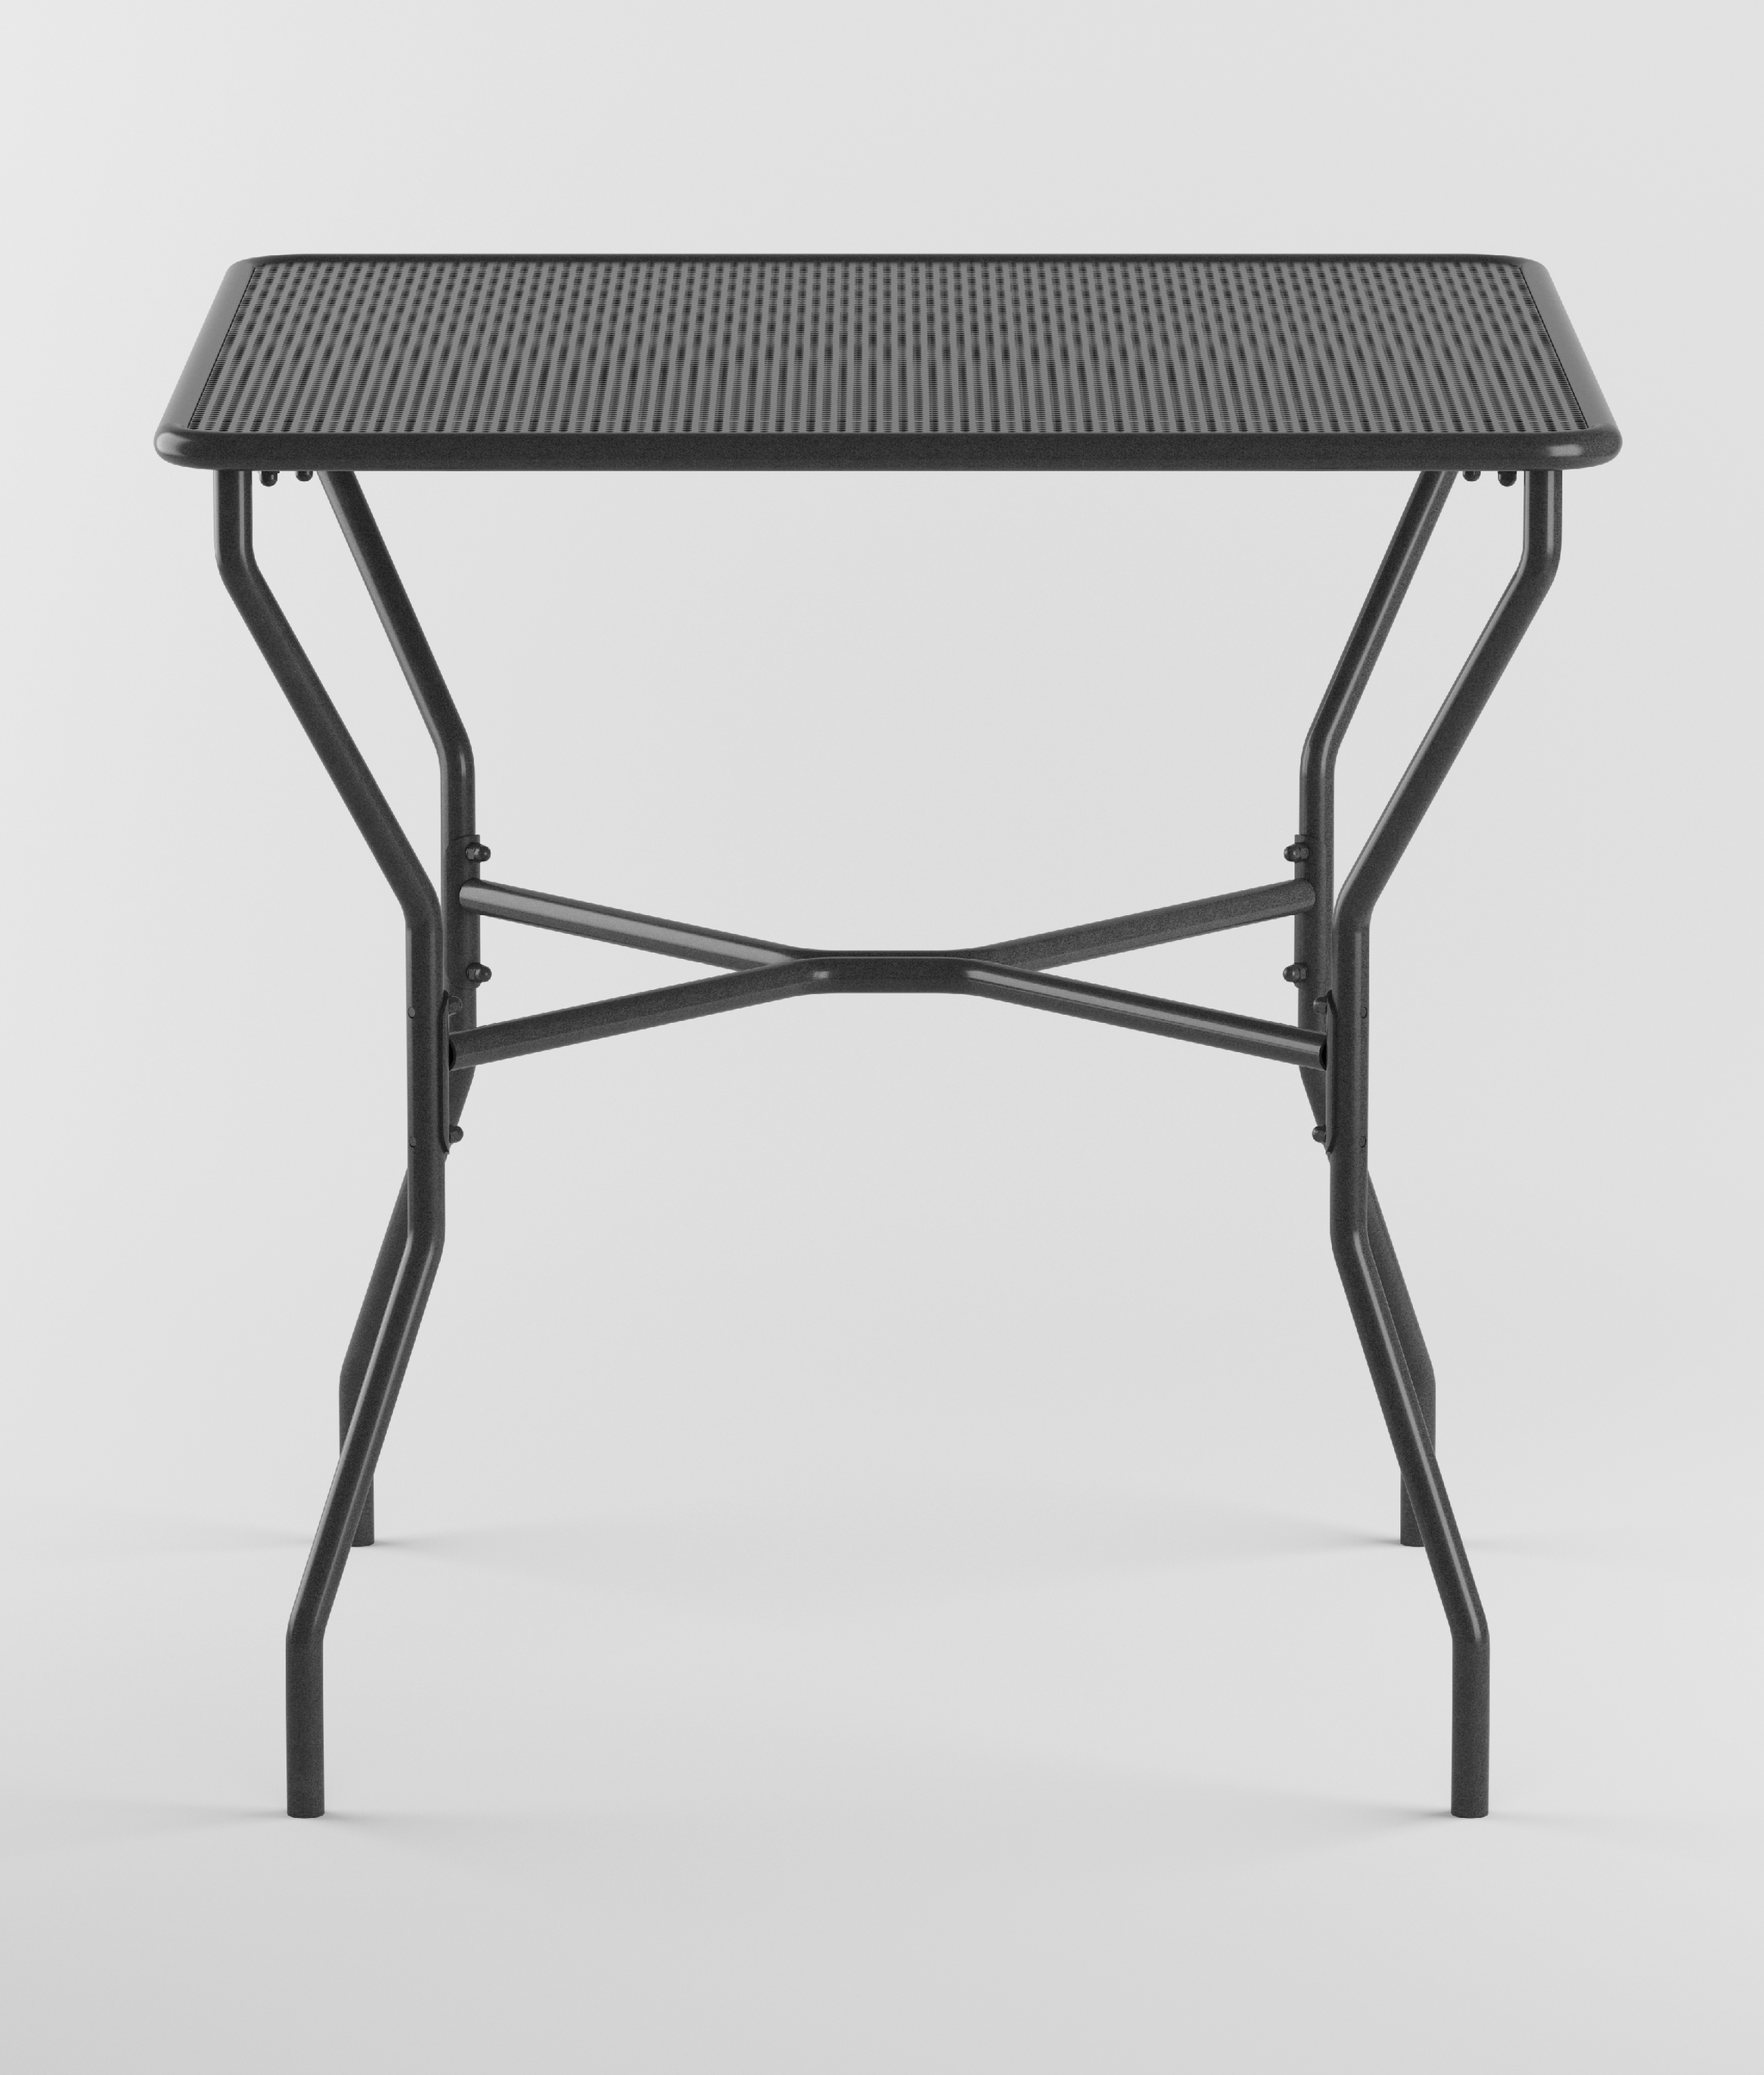 Opla Outdoor Square Table outdoor furniture.png